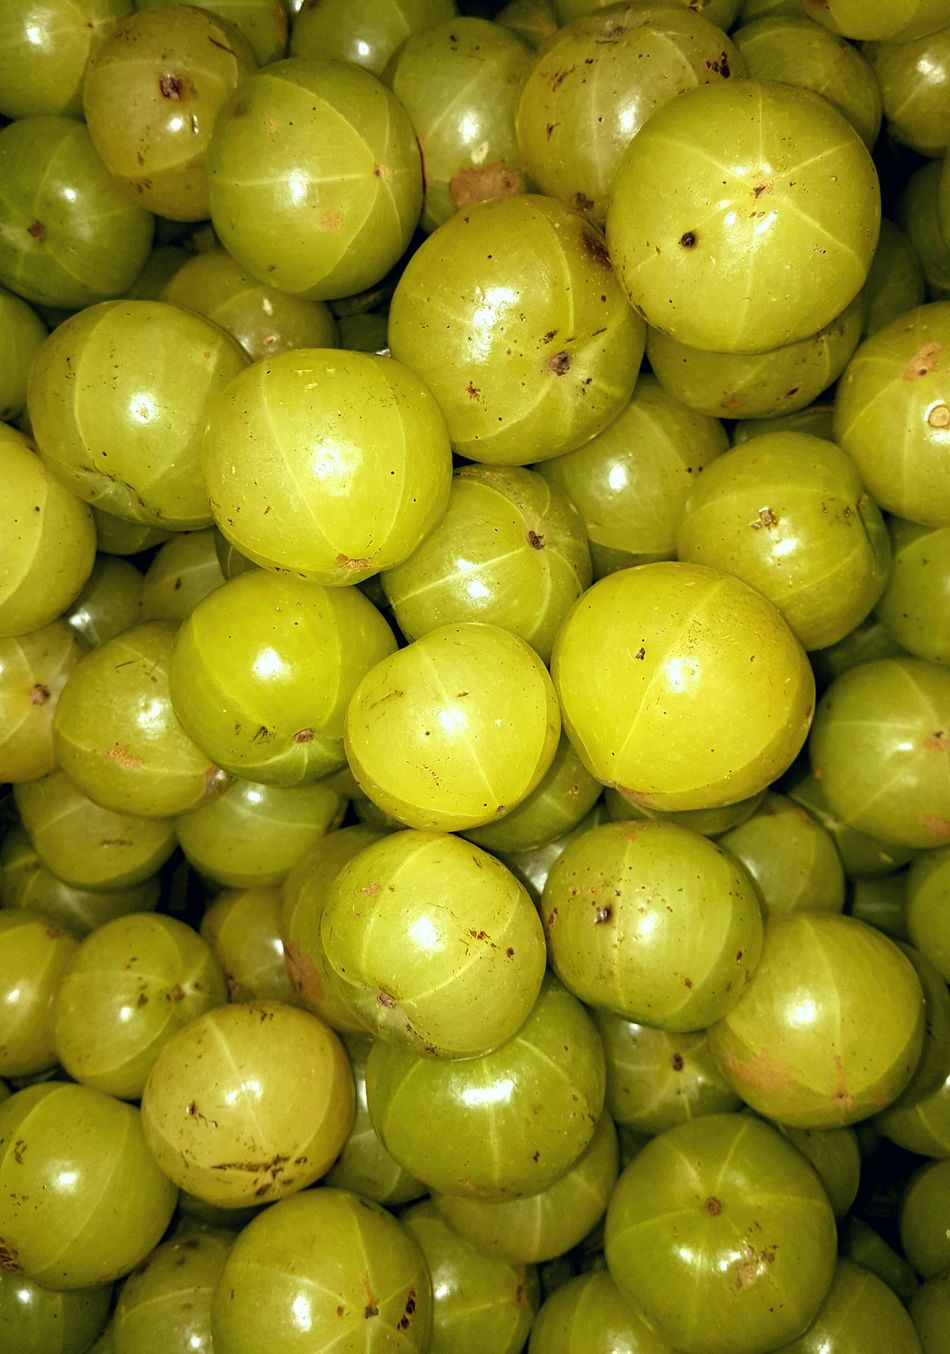 Gooseberries Gooseberries Gooseberry Freshness Yellow Healthy Eating Close-up Large Group Of Objects Hellow World Vegetables Eyeemphotography EyeEm4photogtaphy EyeEm Gallery Eyeem Market EyeEm Market Berries Green Berries Bigger Size AMLA Medicinal Value Medicinal GooseberrySalad Fruit Berry Fruit Vitamin C